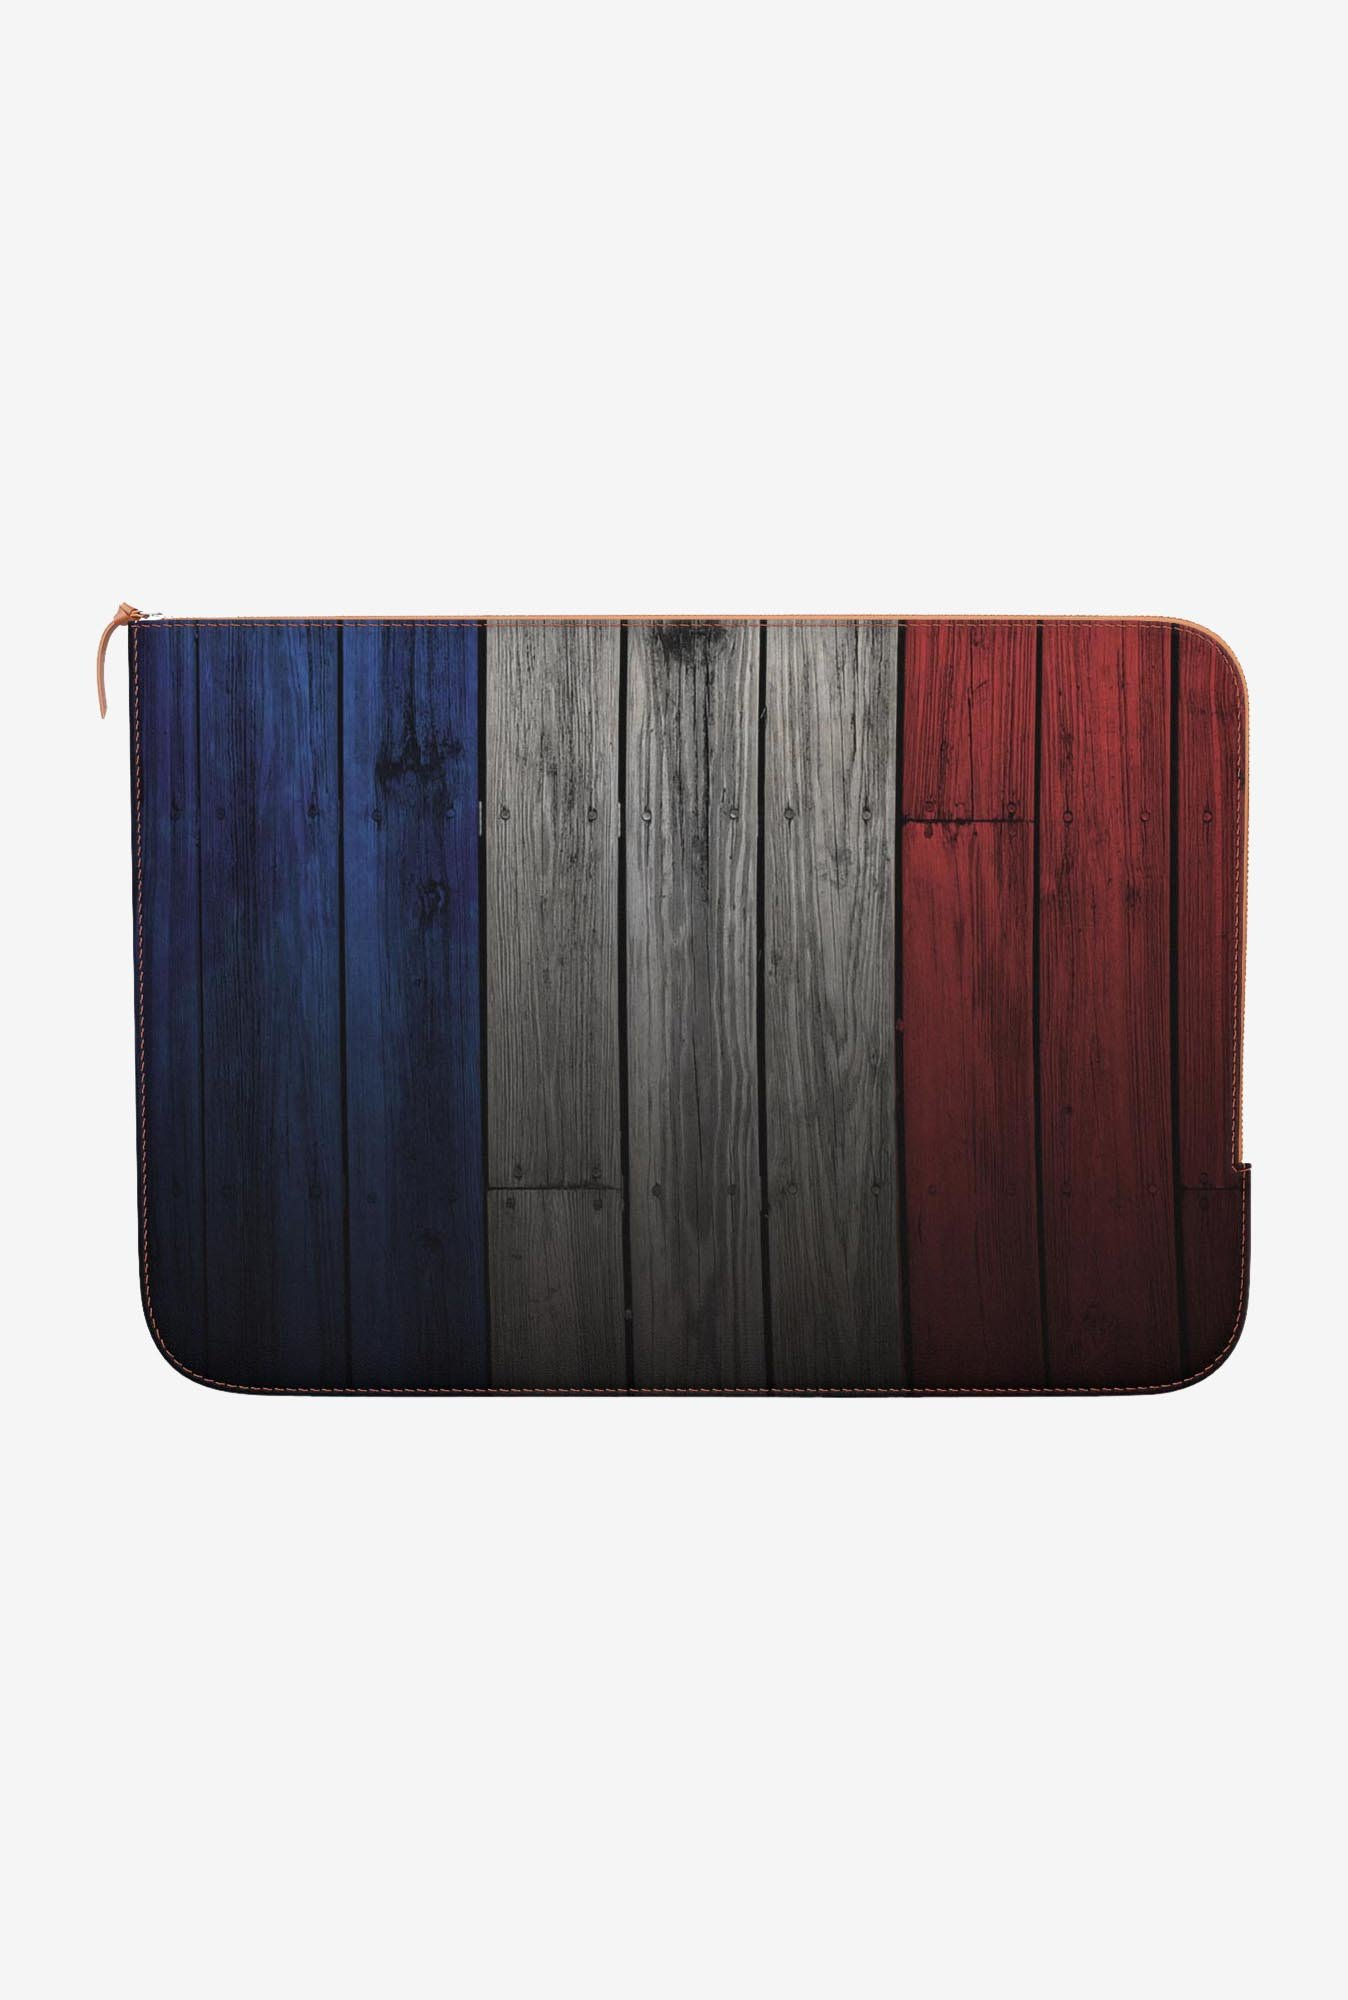 DailyObjects The French MacBook Pro 13 Zippered Sleeve